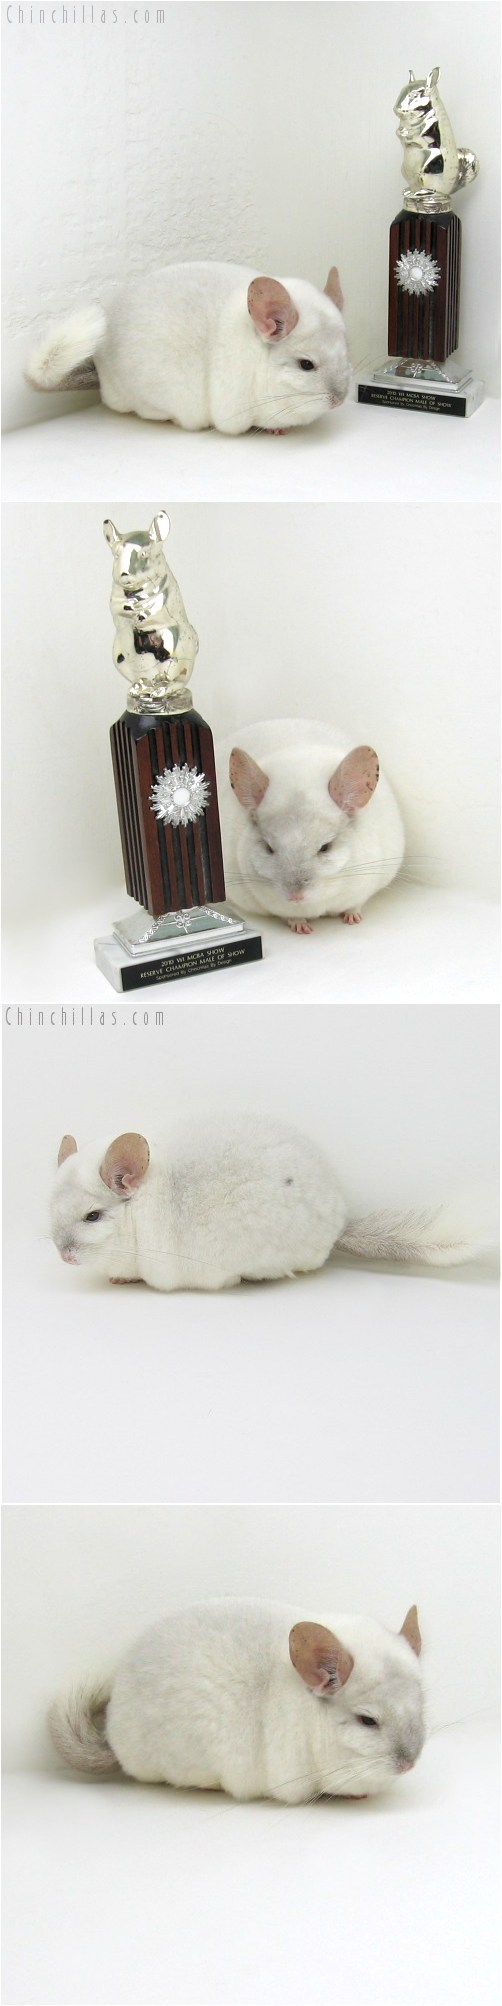 10076 Extra Extra Large Herd Improvement Quality Pink White Male Chinchilla